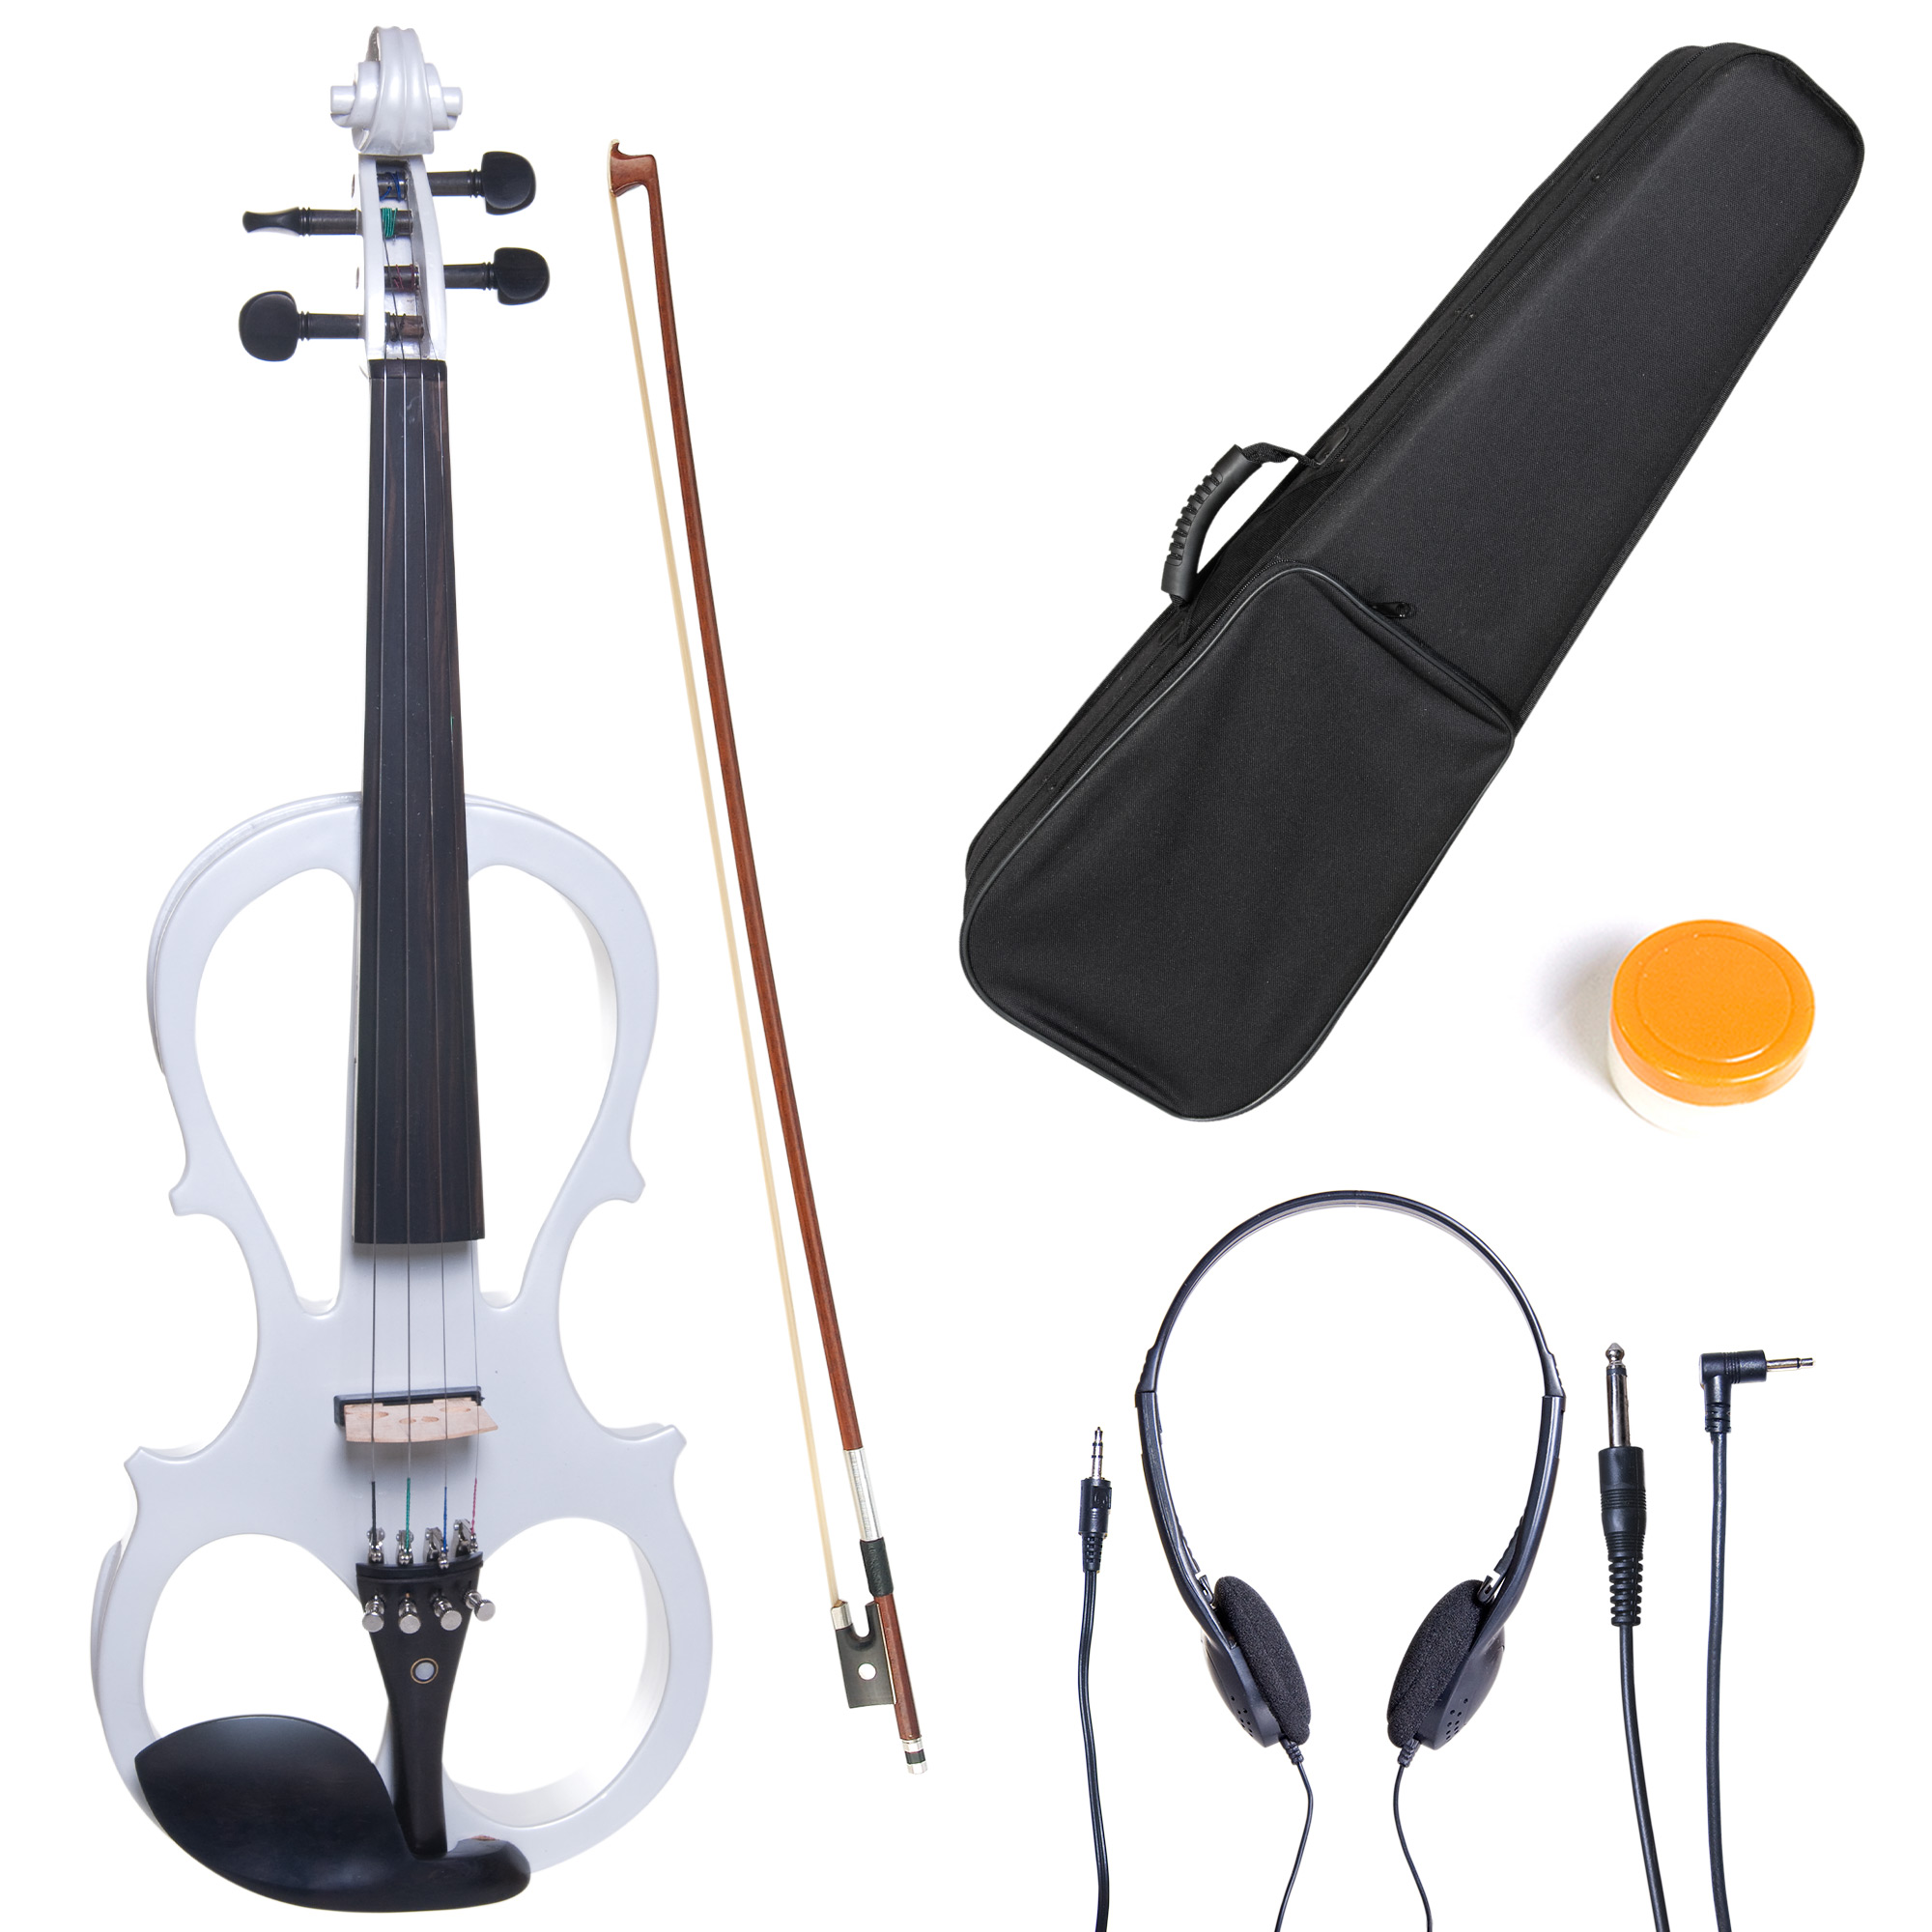 Cecilio Size 3/4 CEVN-1W Solidwood Pearl White Electric/Silent Violin with Ebony Fittings